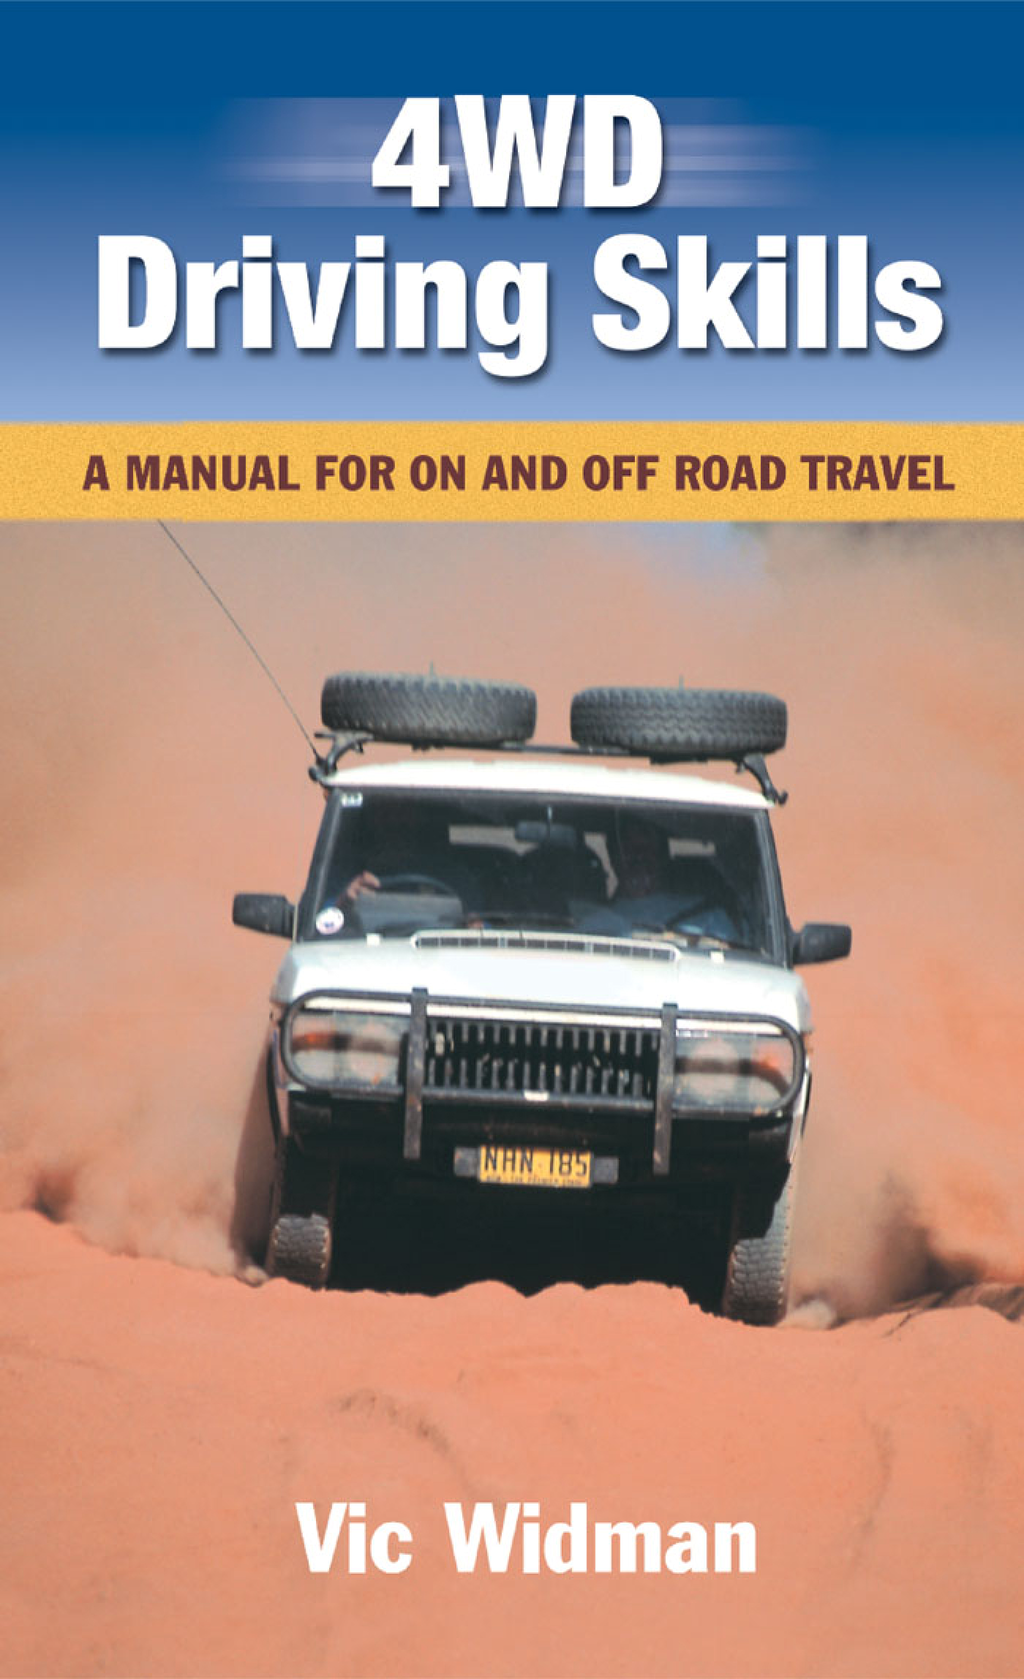 4WD Driving Skills: A Manual for On and Off Road Travel